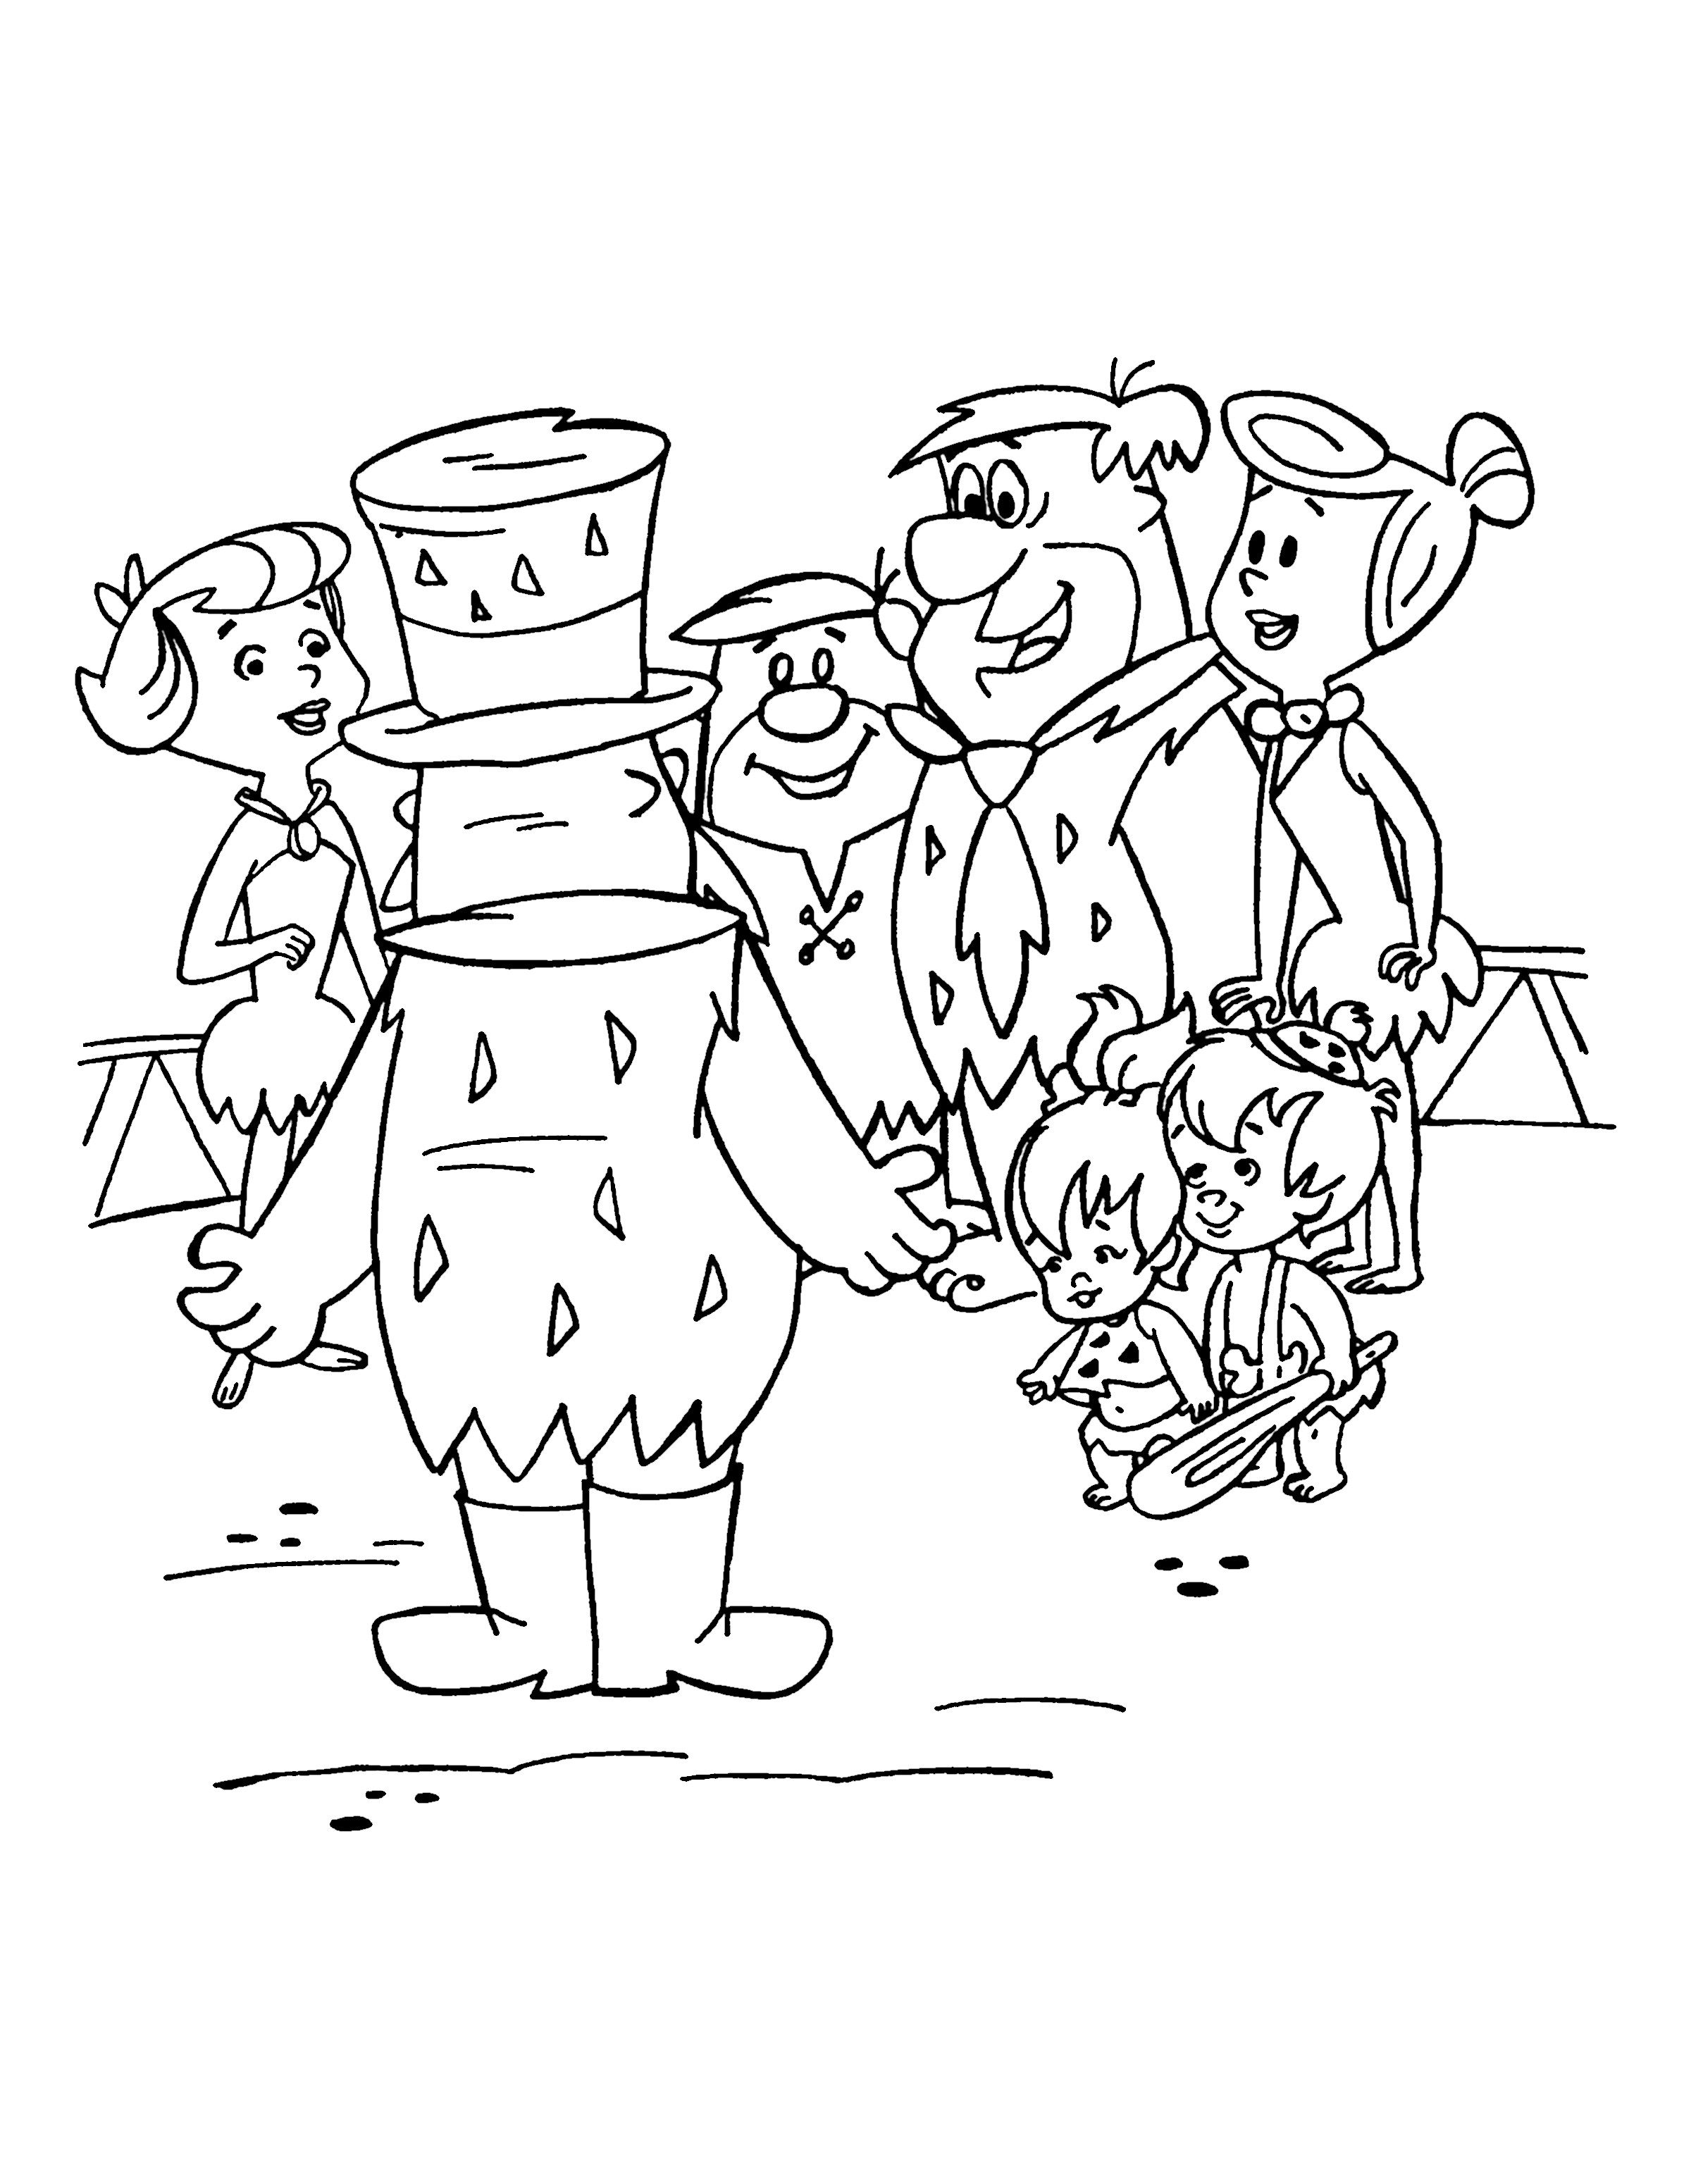 The Flintstones Coloring Pages 14   Coloring pages for kids   Pinterest